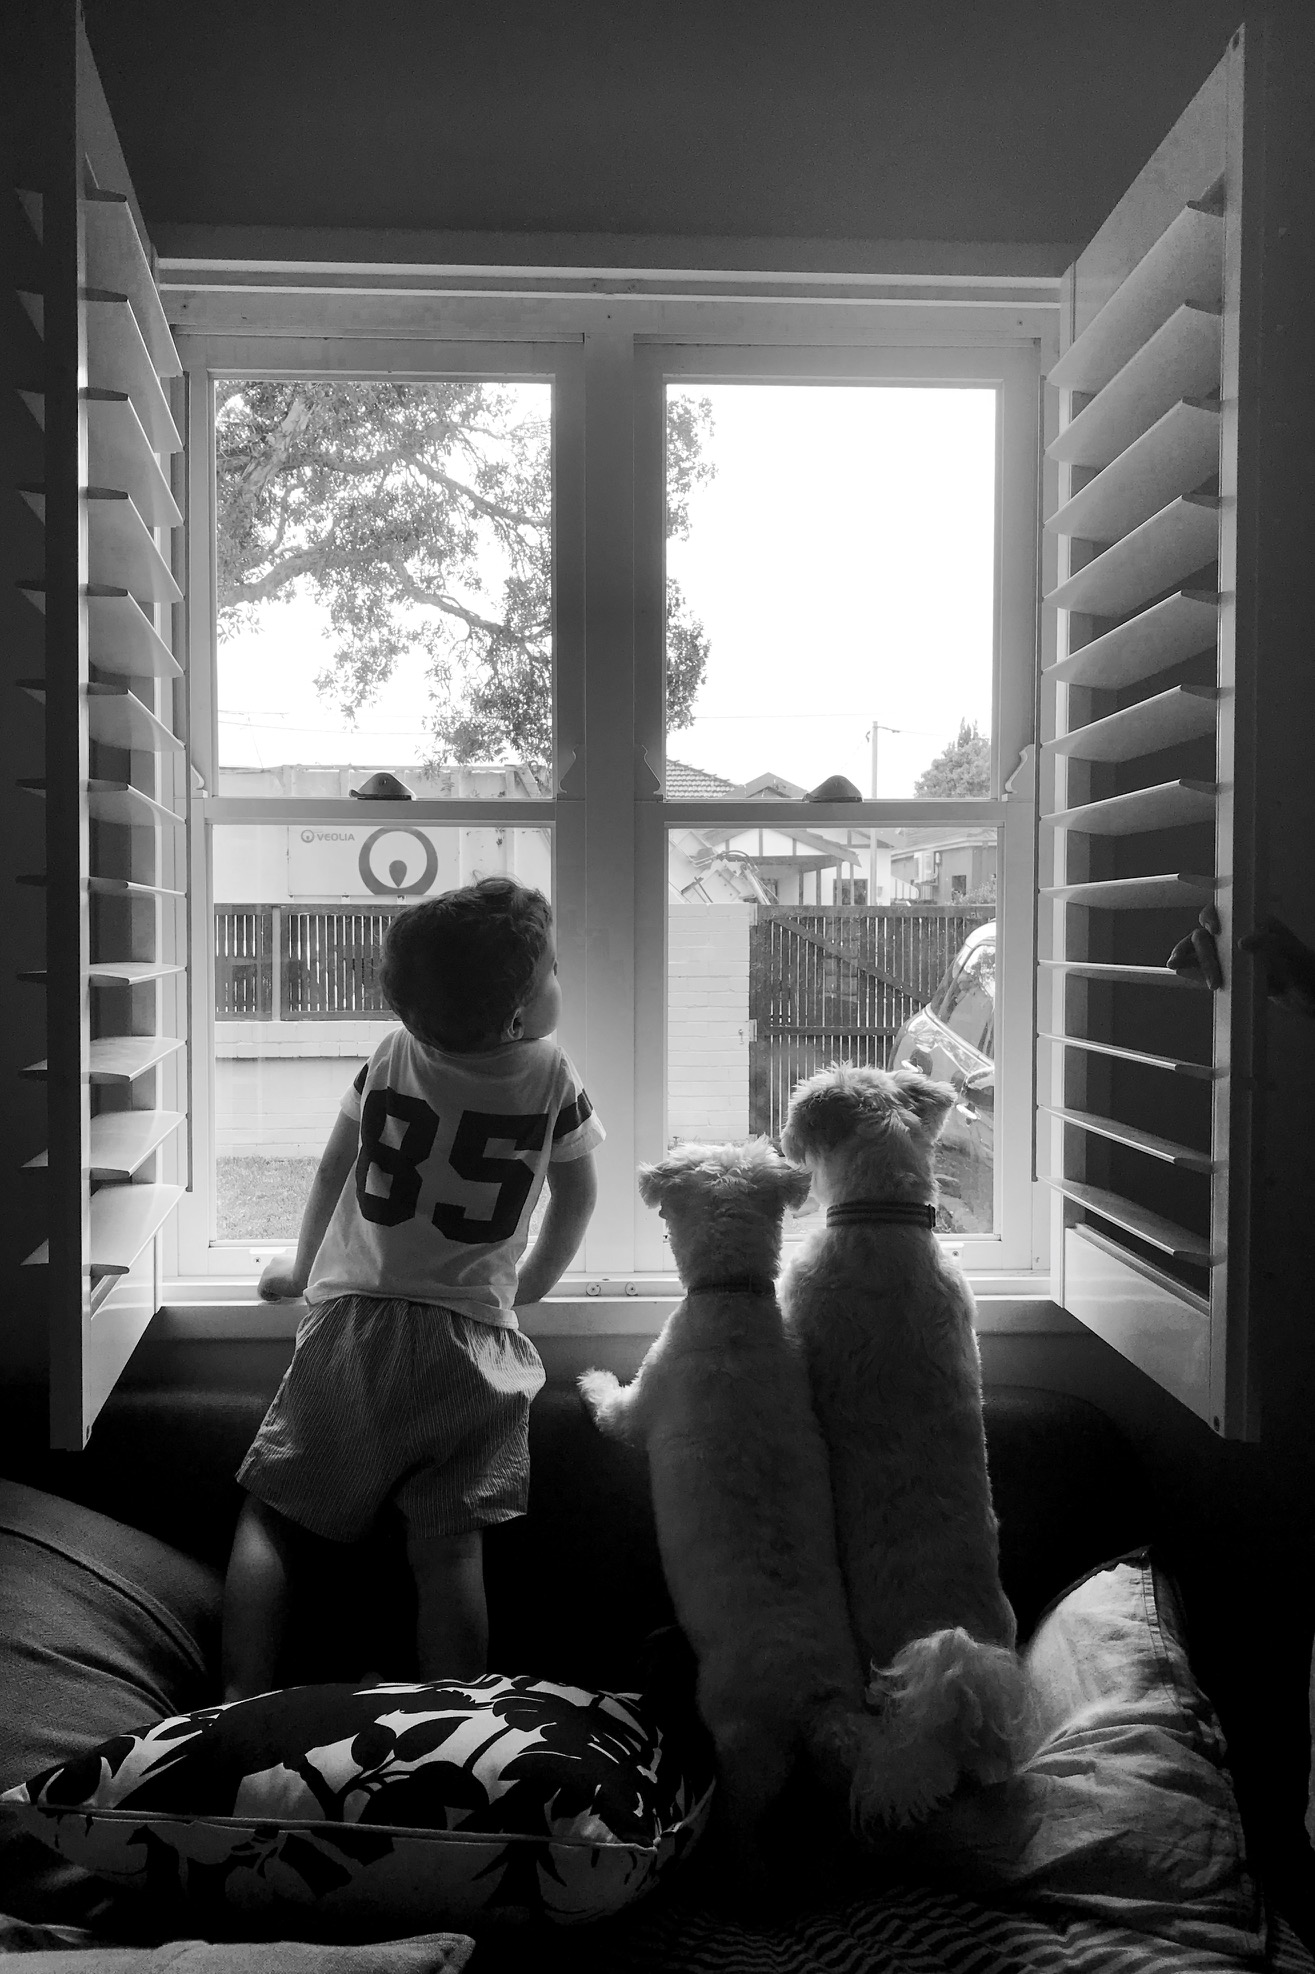 Daydreaming at the window in black and white